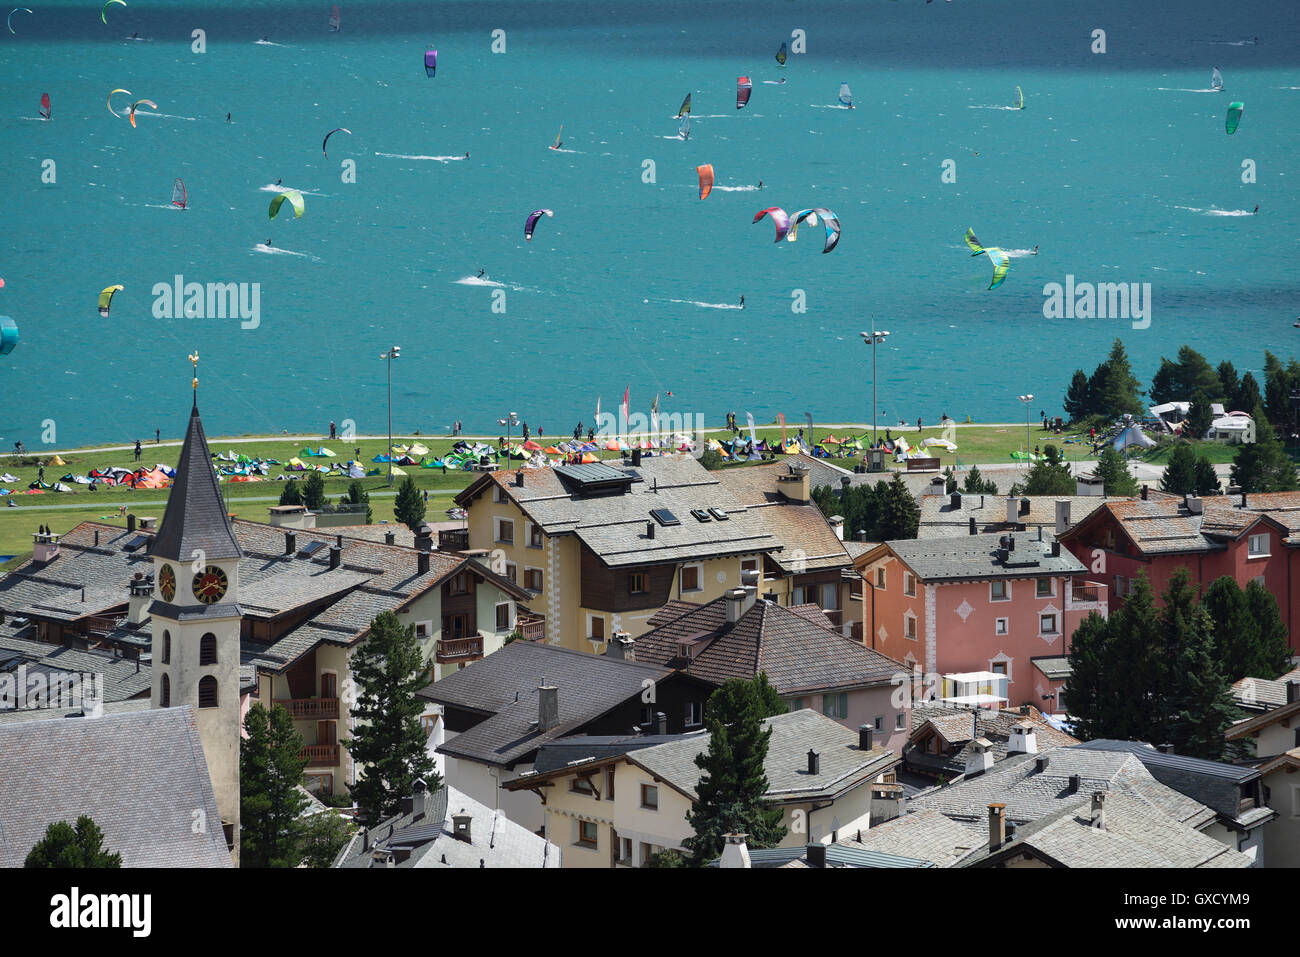 Large group of kitesurfers on turquoise lake by village of Silvaplana near St Moritz, Canton Graubunden, Switzerland - Stock Image